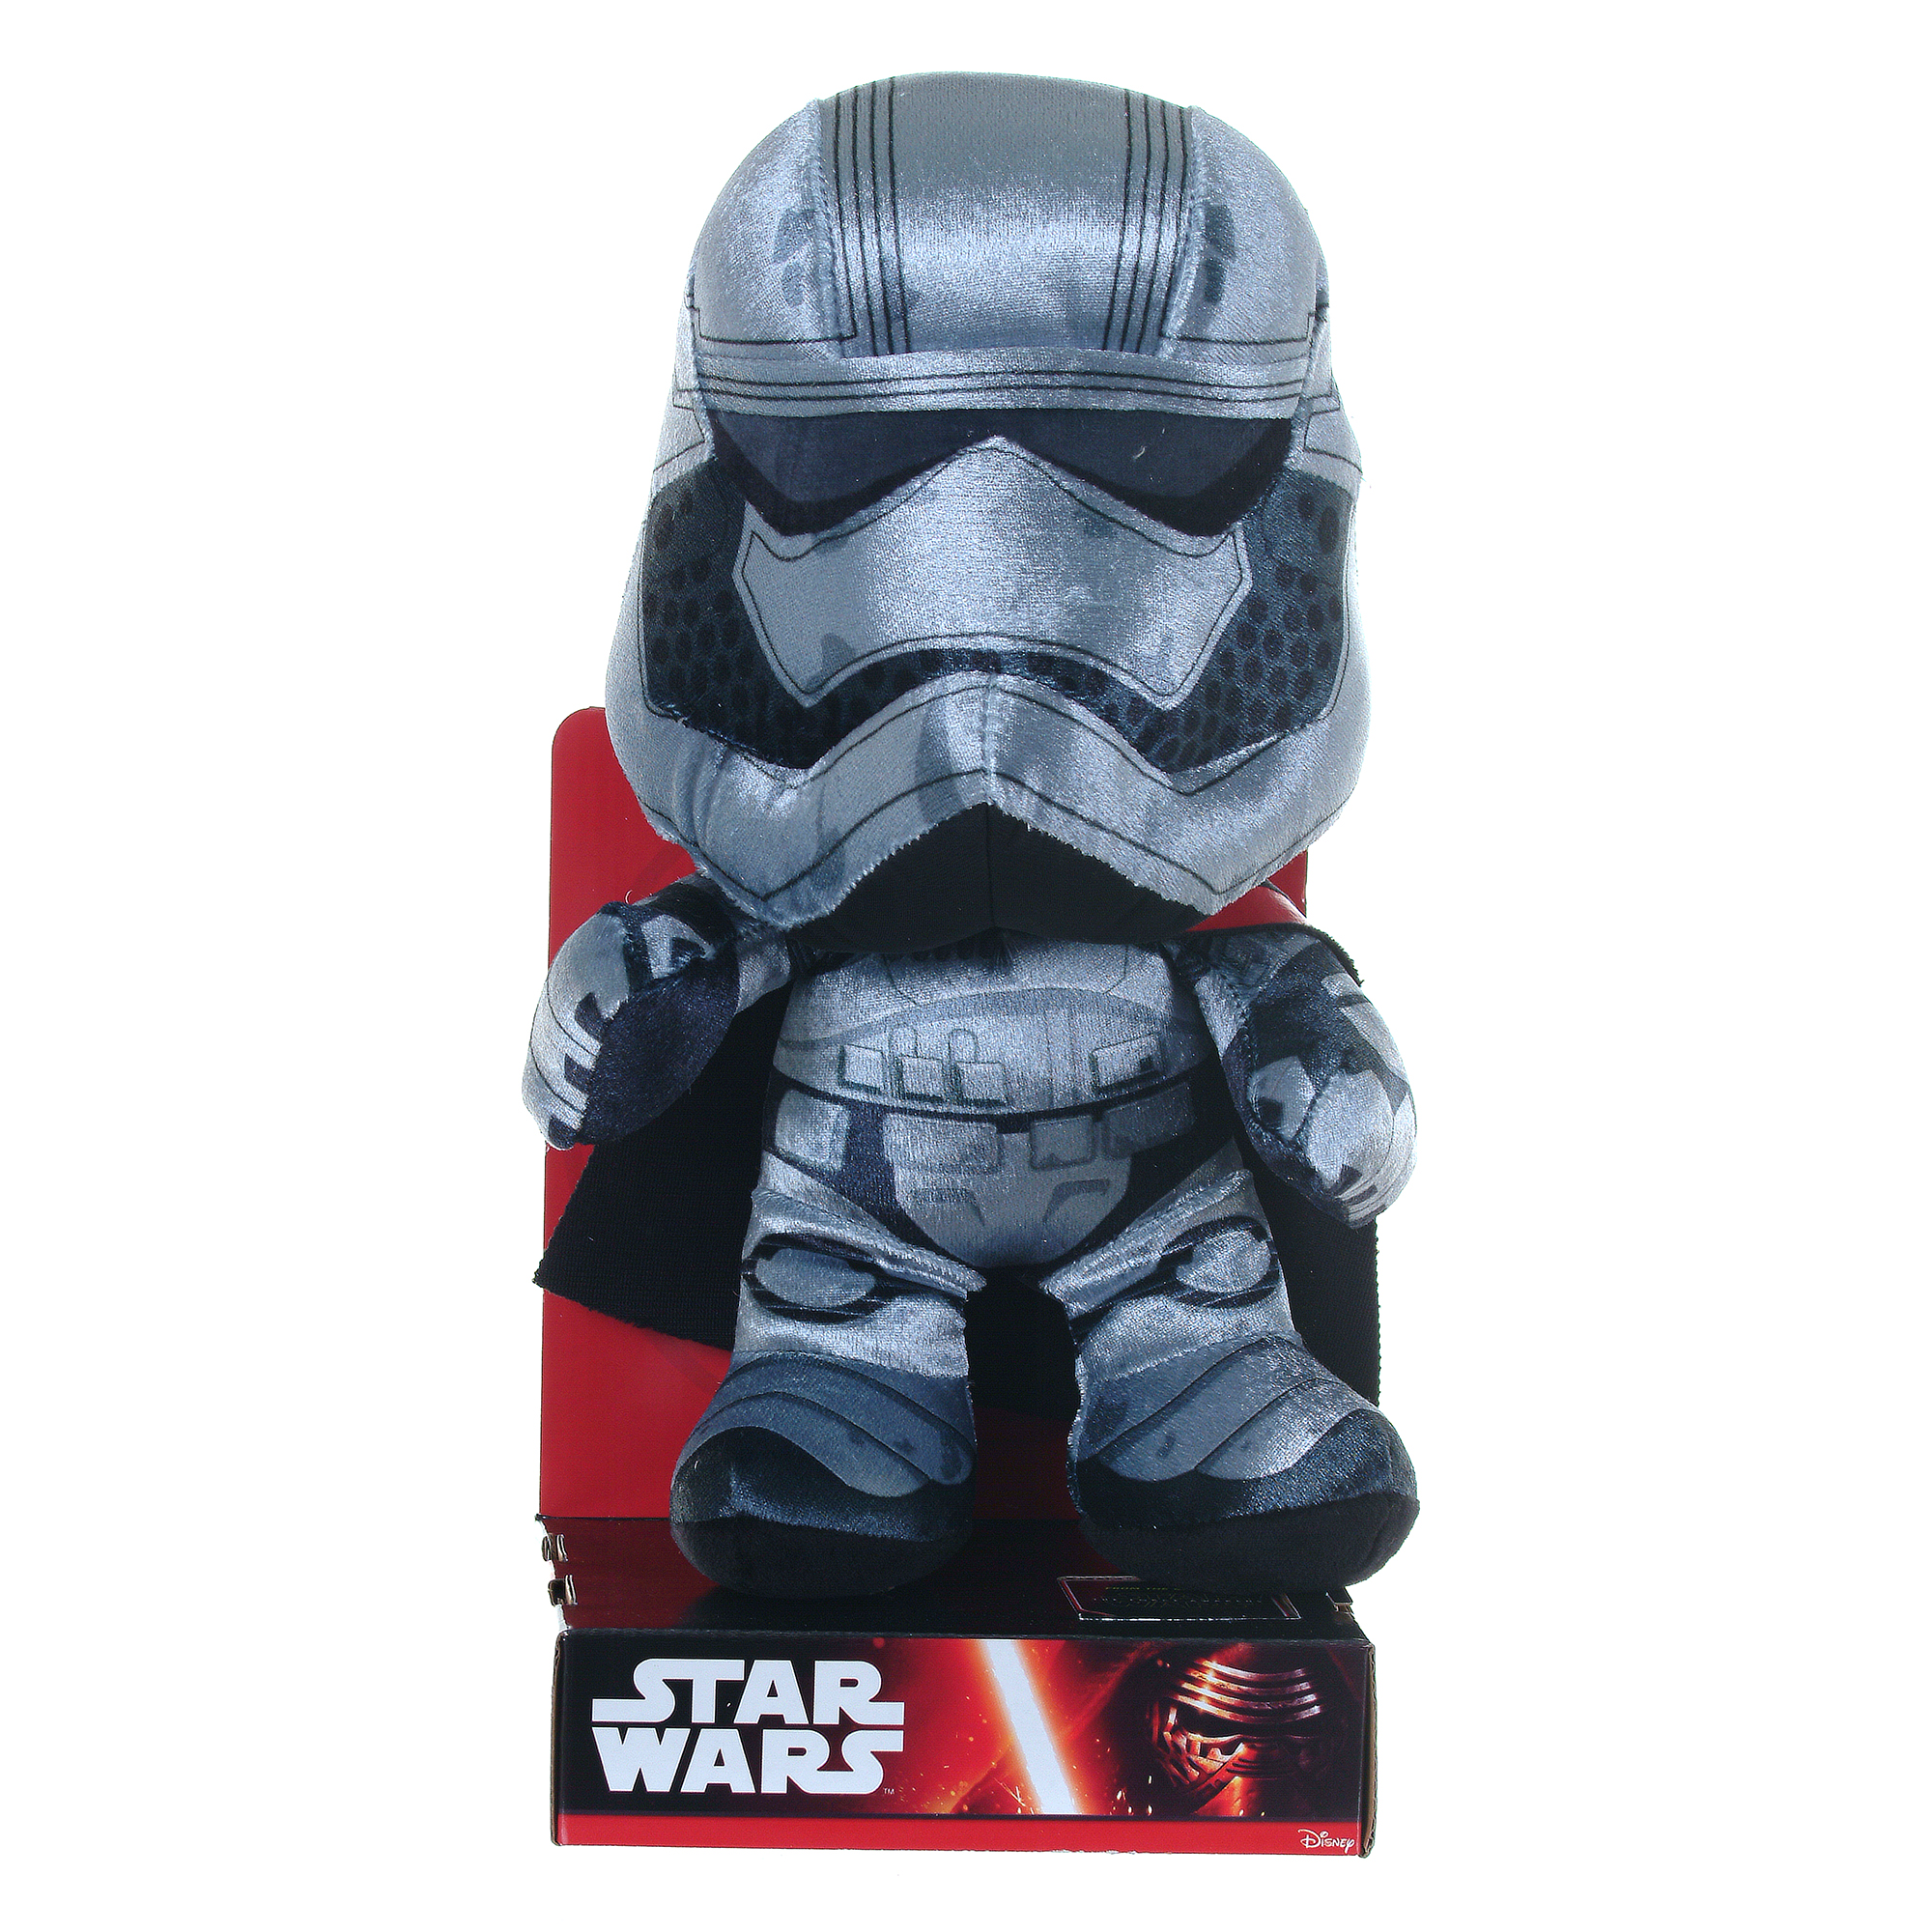 Picture of Star Wars The Force Awaken 10-inch Captain Phasma Soft Toy